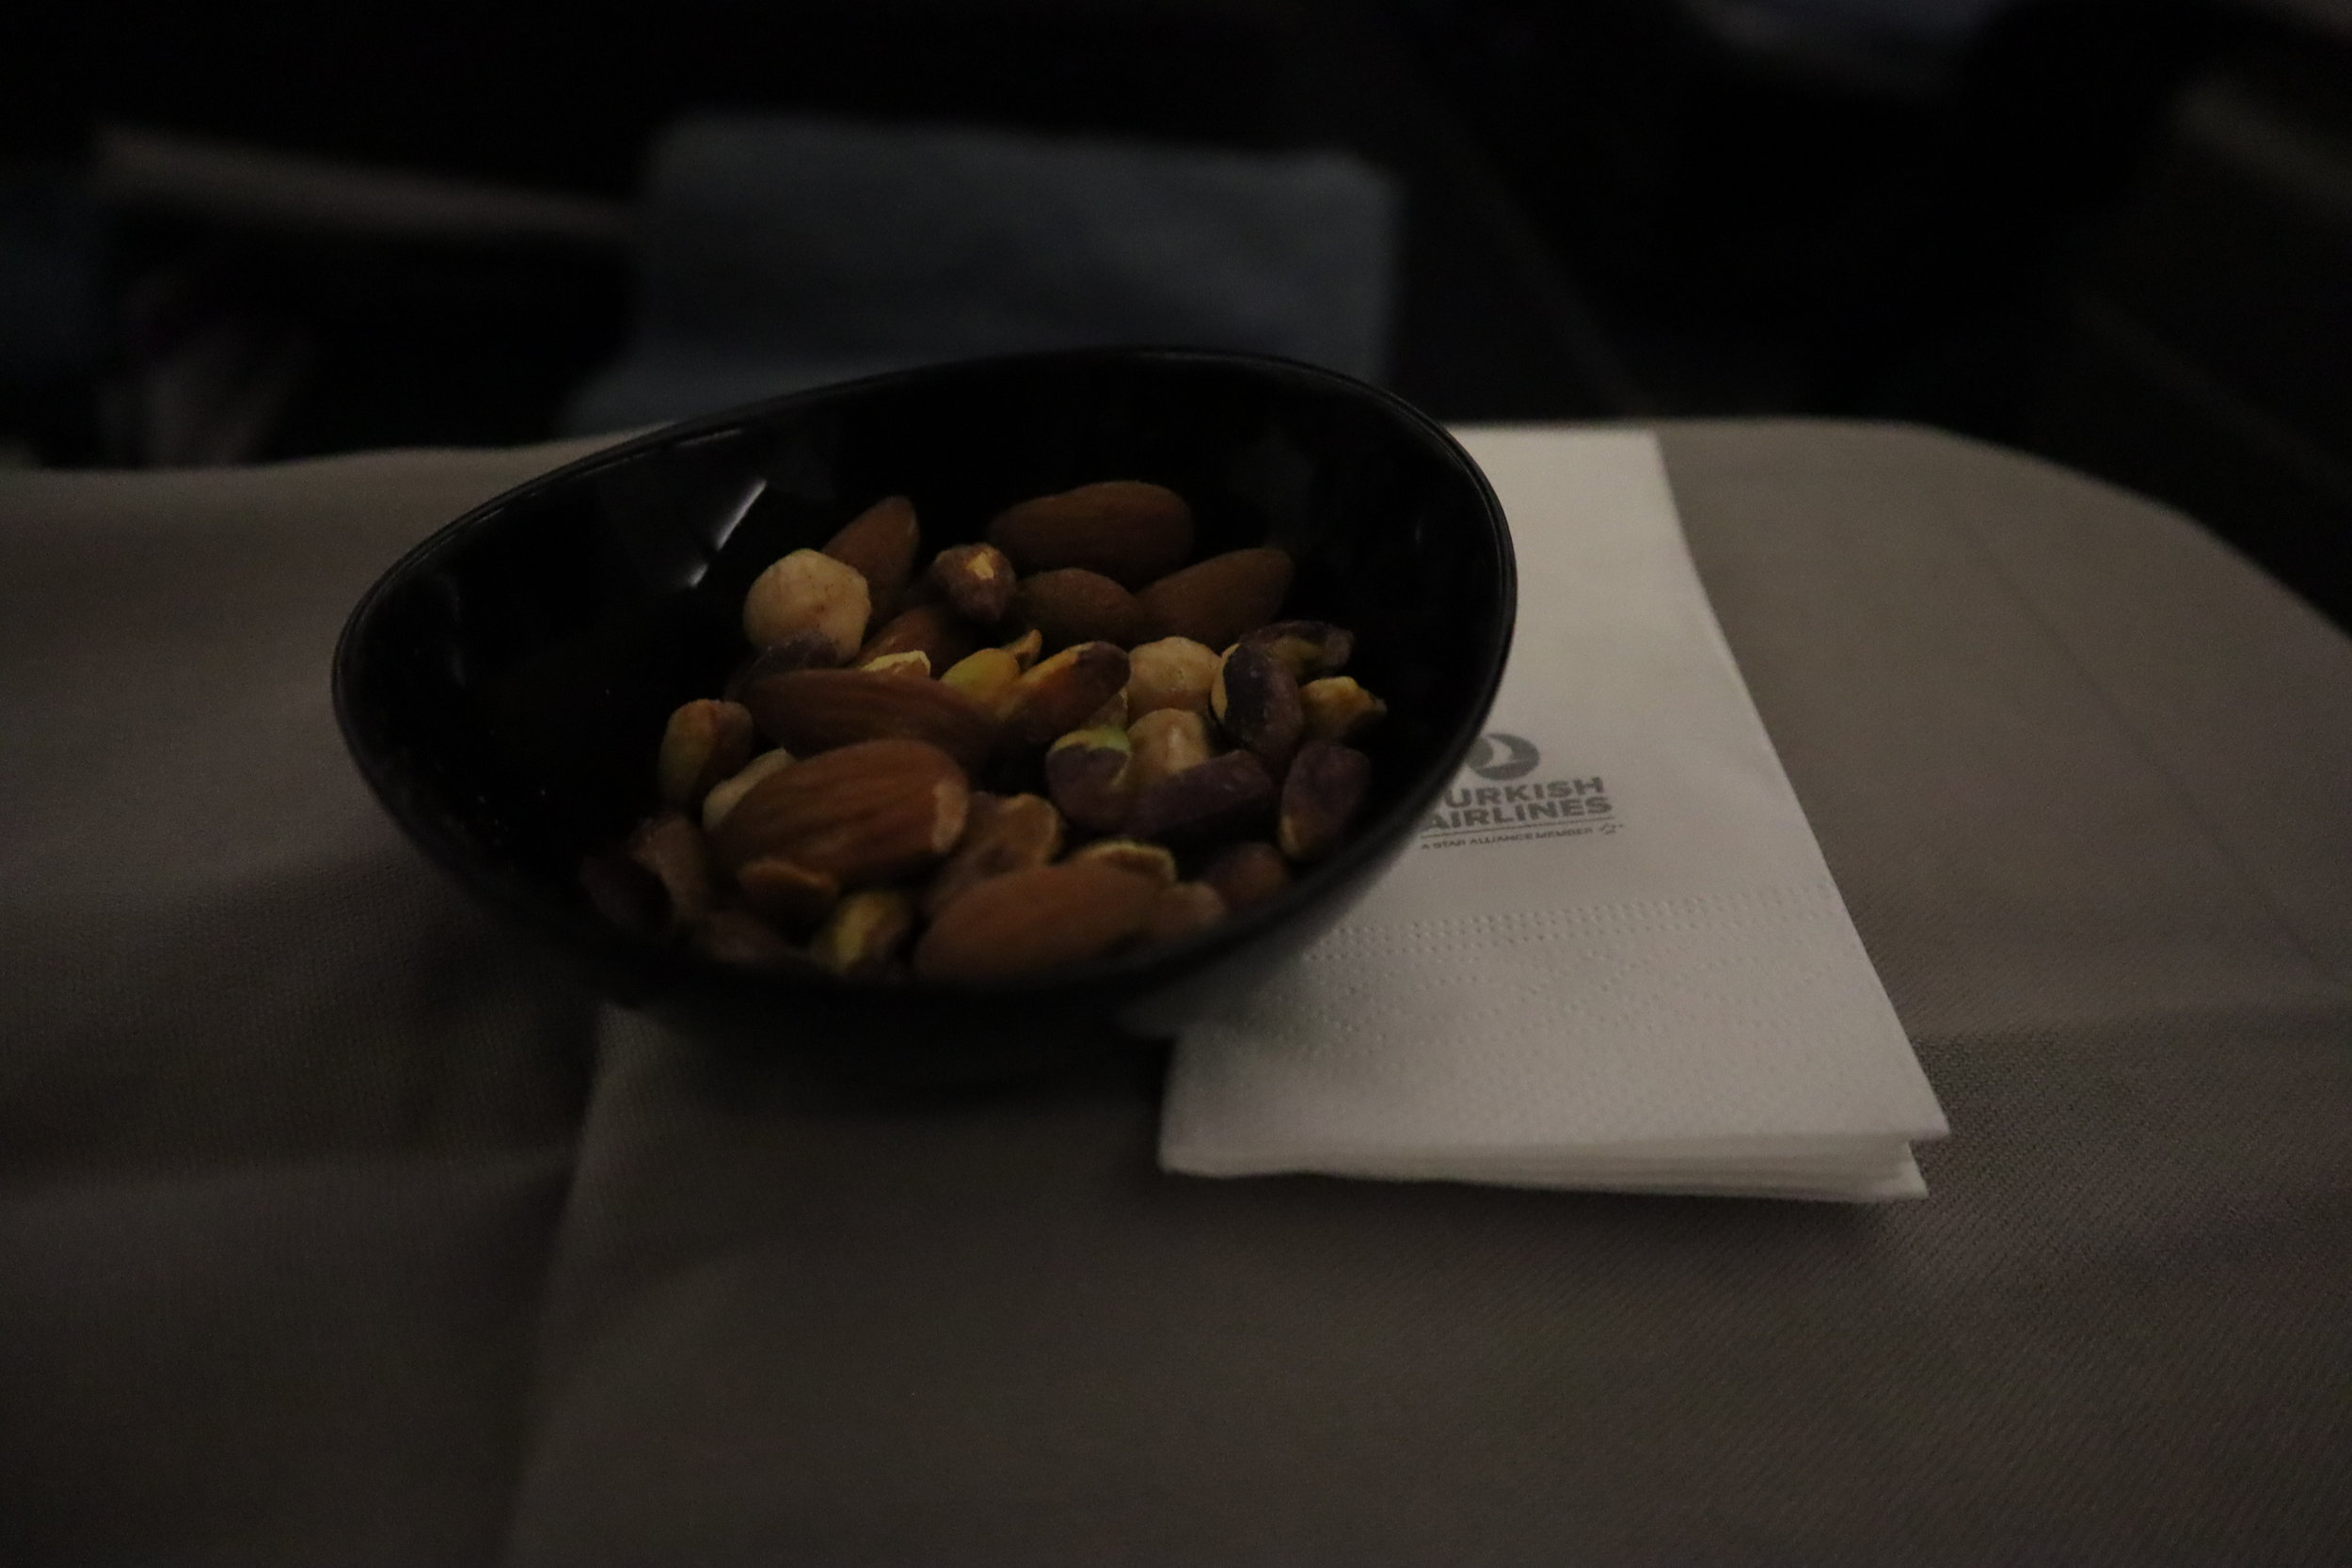 Turkish Airlines A330 business class – Mixed nuts